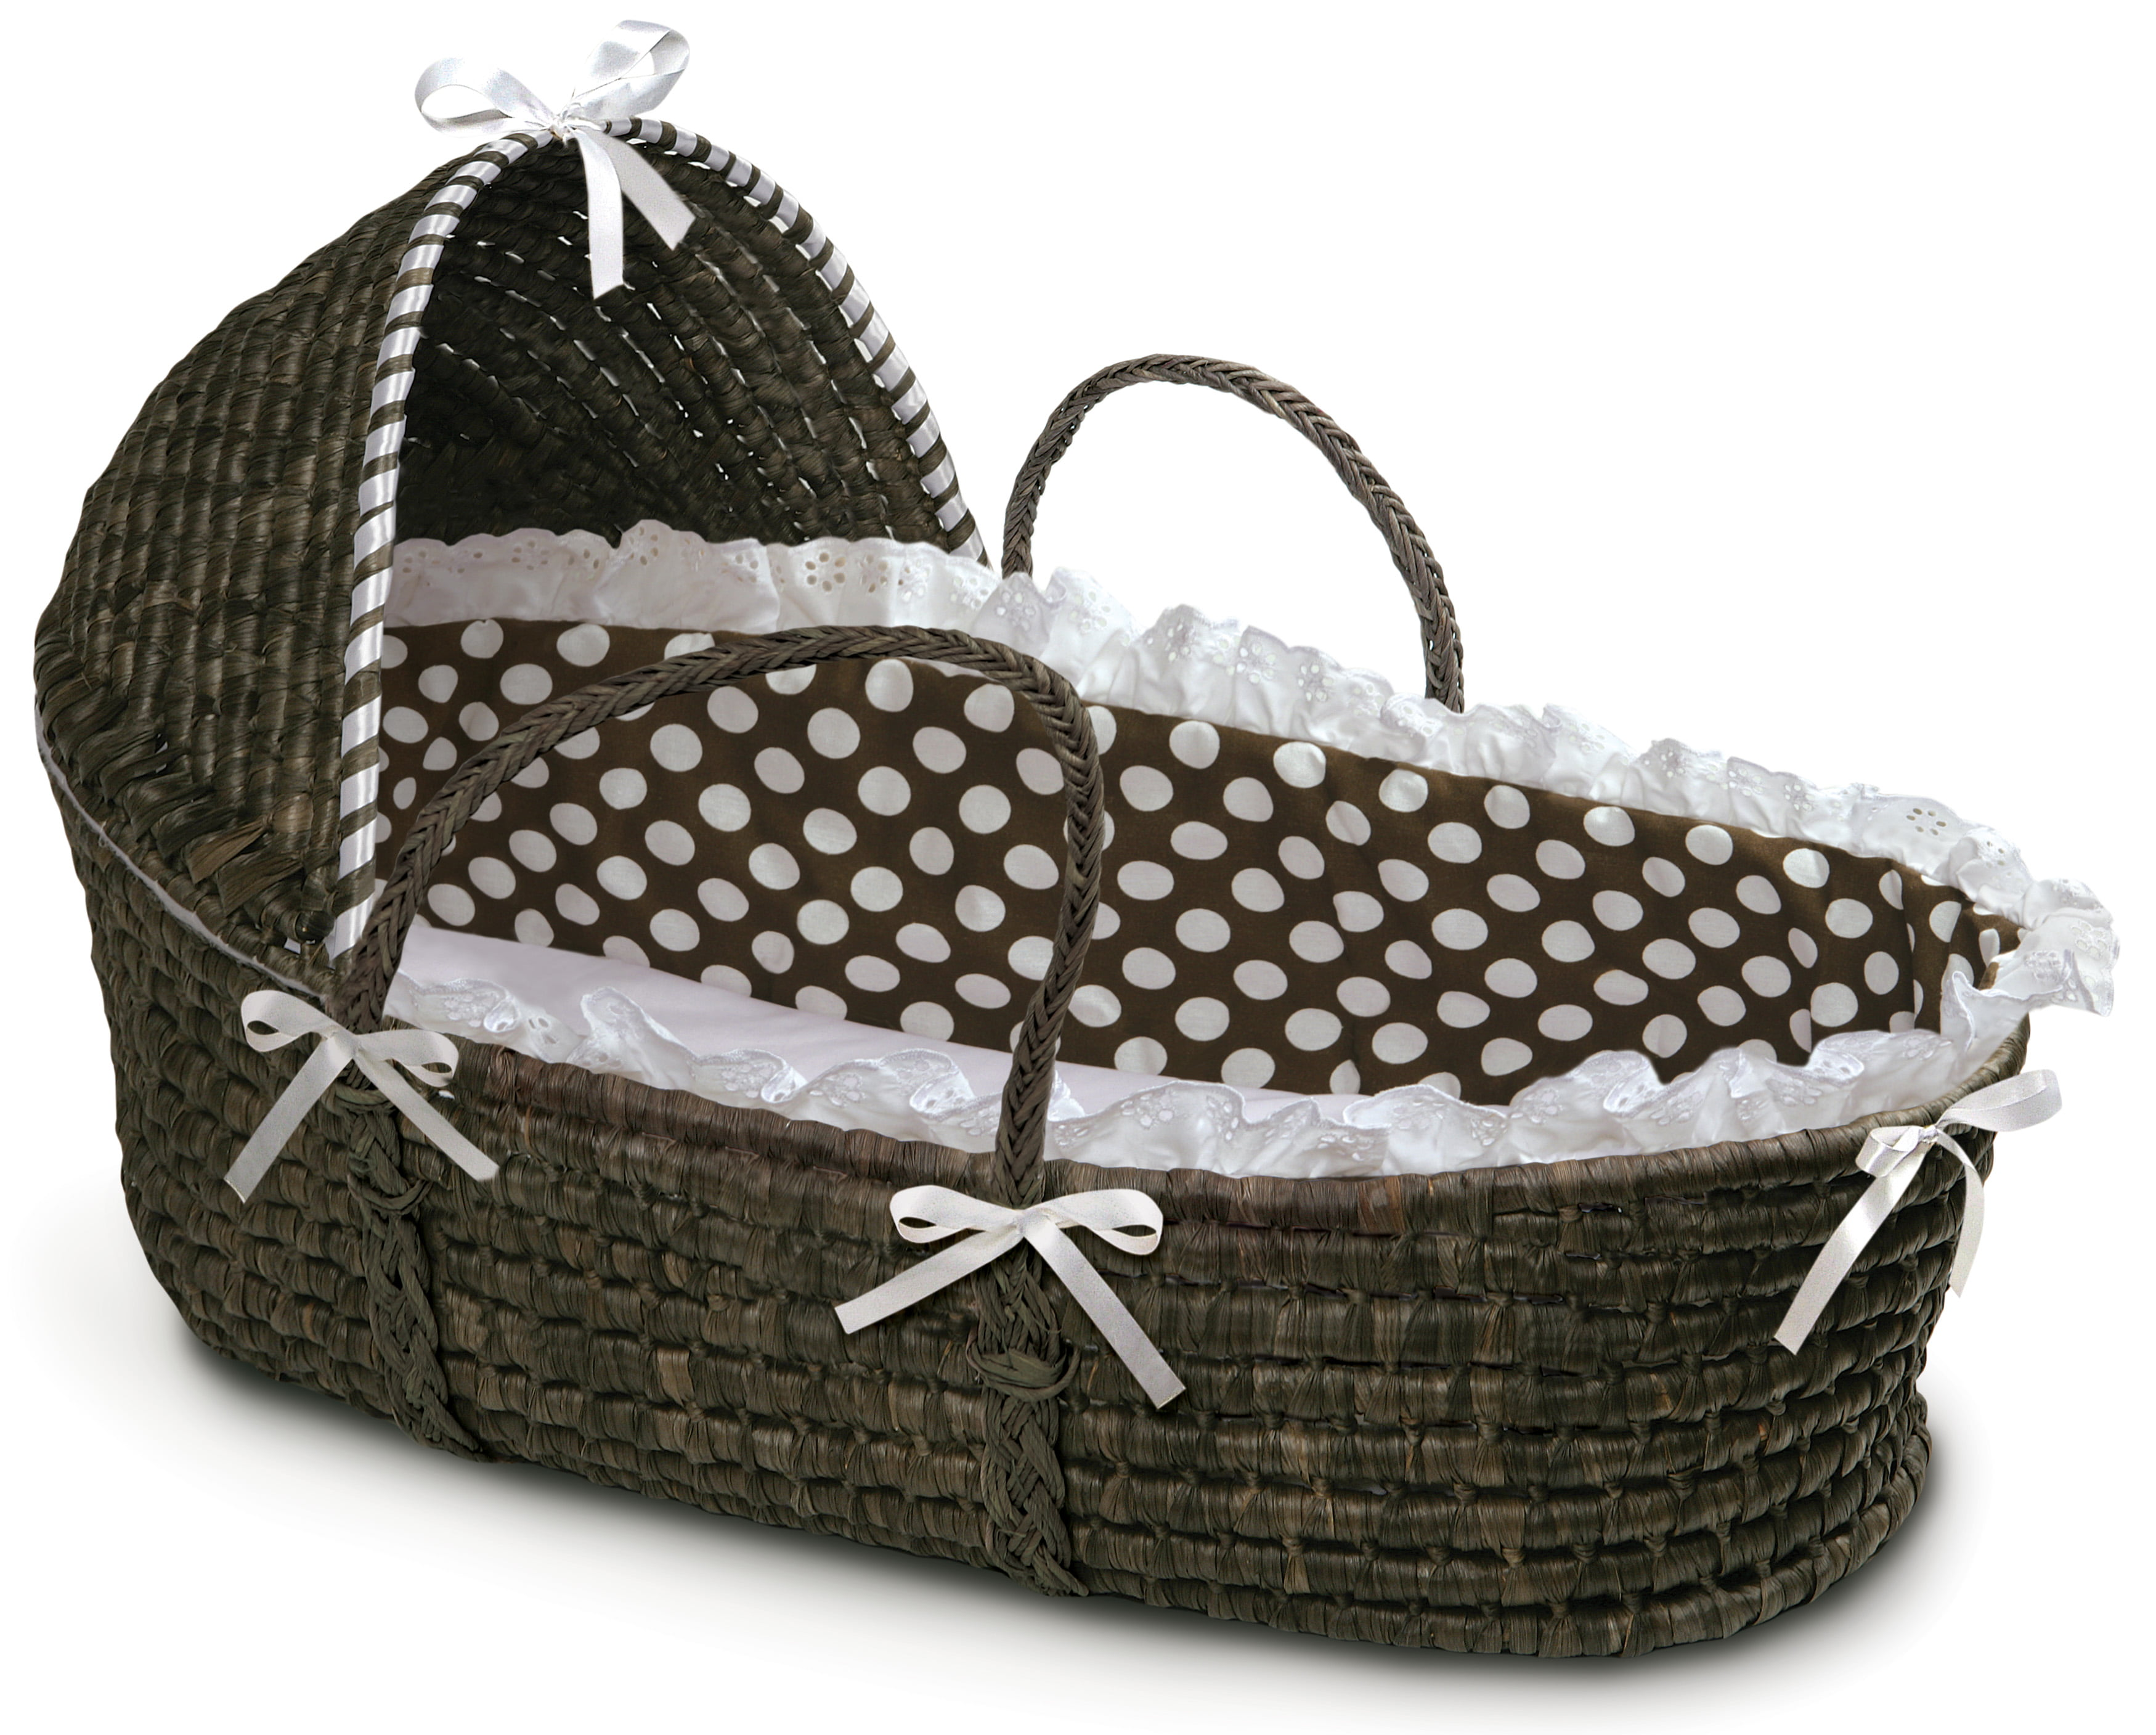 2 x Moses Basket hood bars /& Metal set of fittings Suitable for any basket